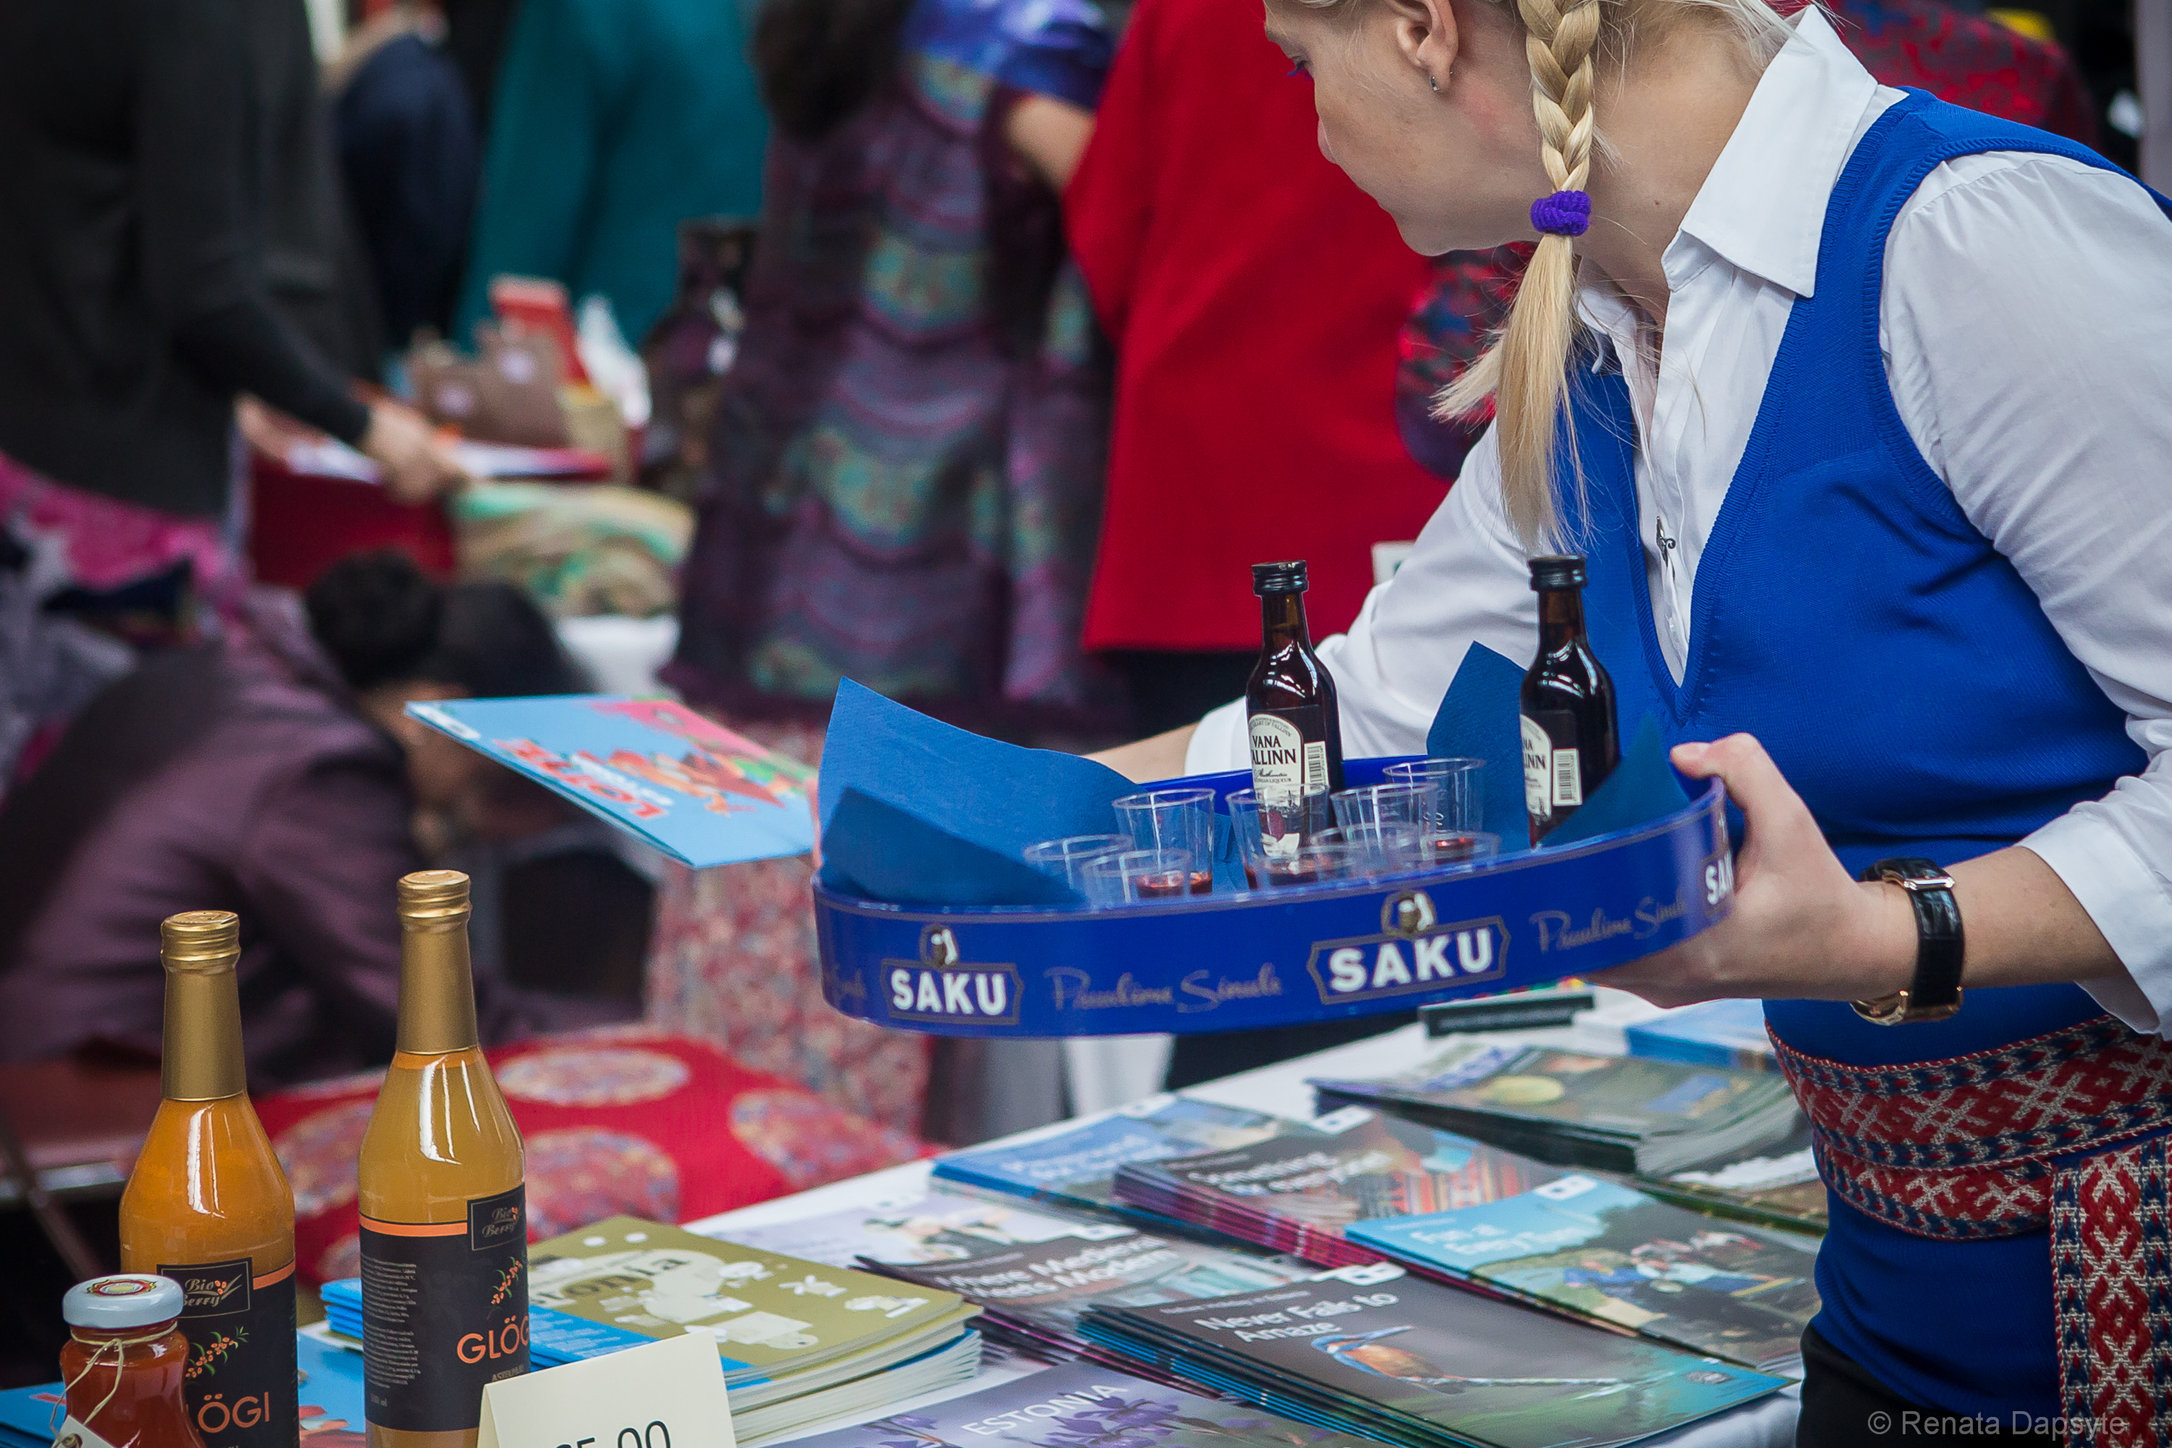 079_International Charity Bazaar Dublin 2013.JPG